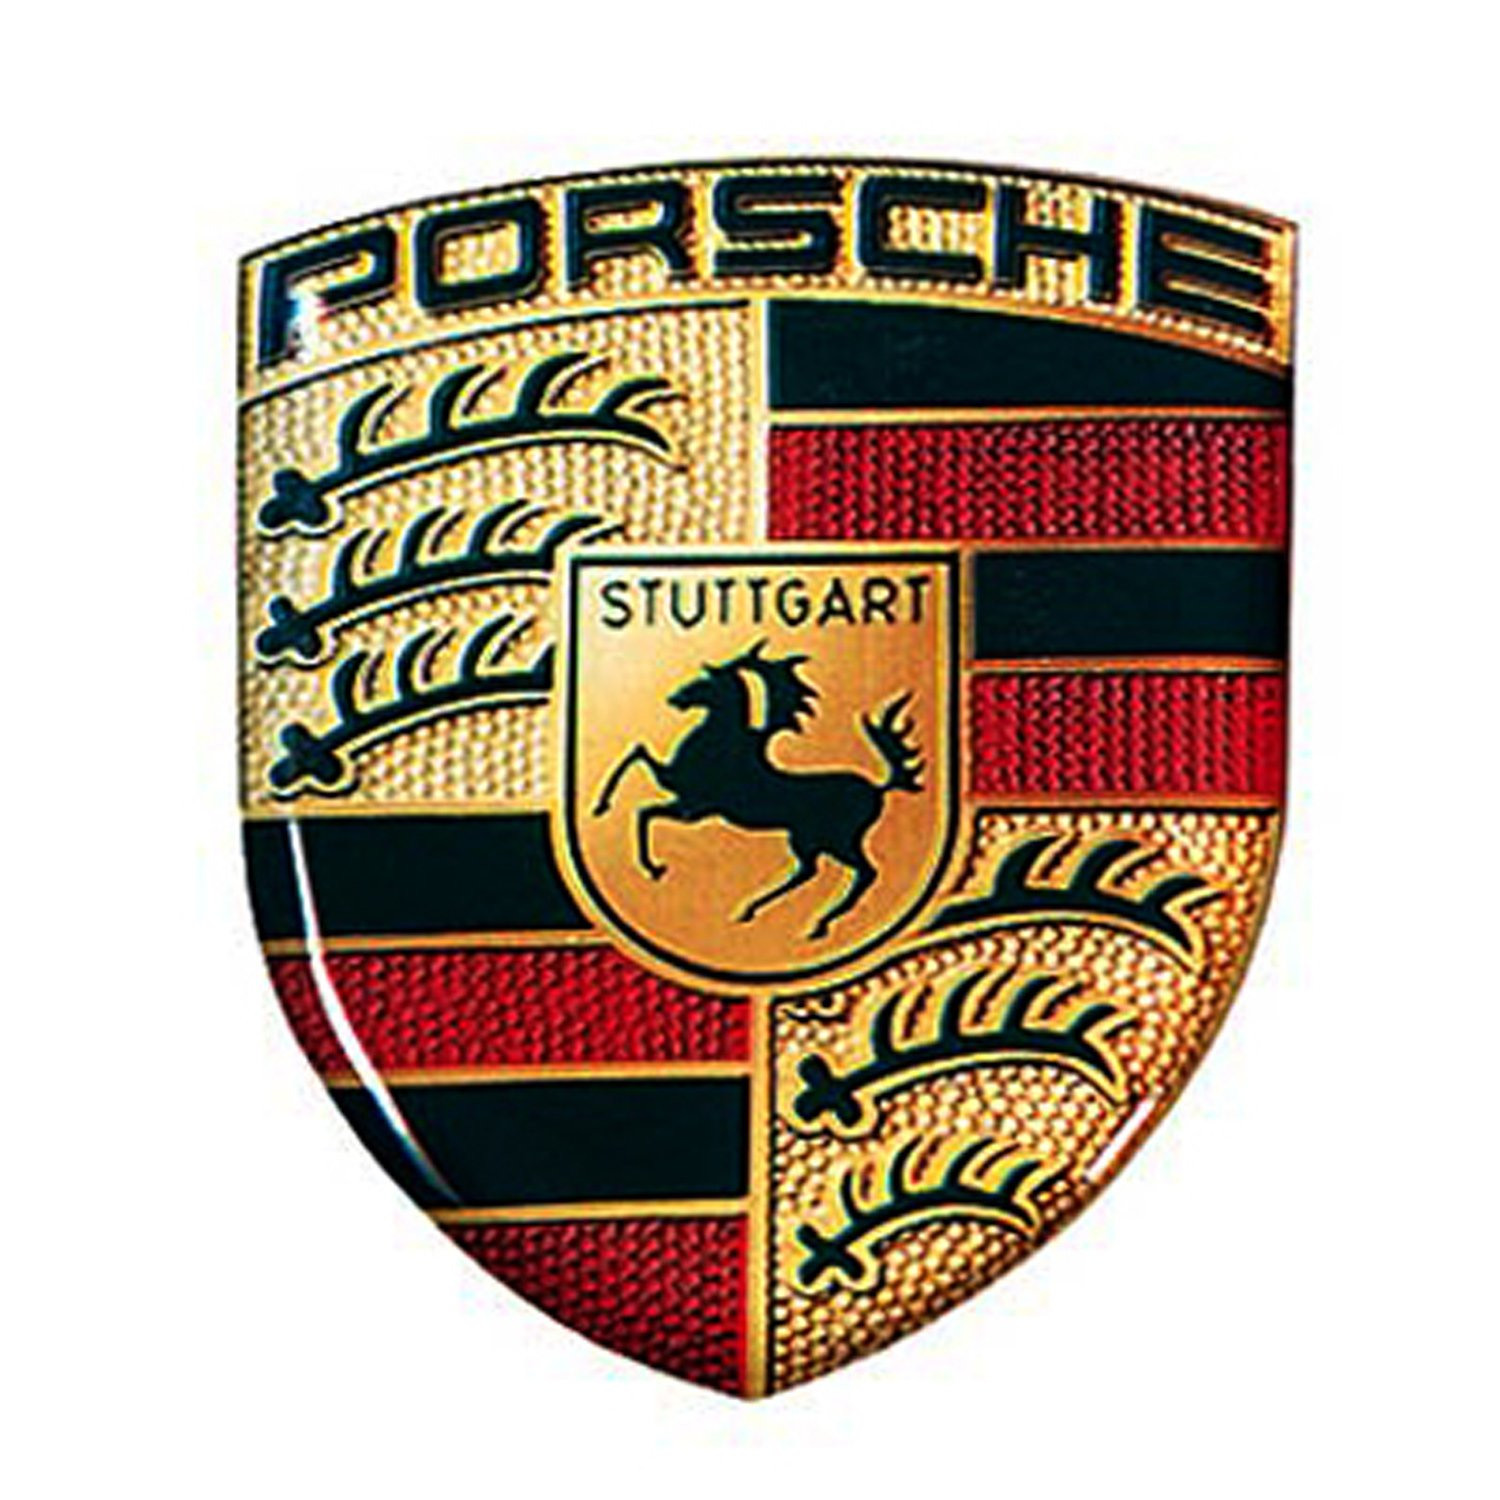 Porsche crest 3d logo sticker amazon co uk car motorbike